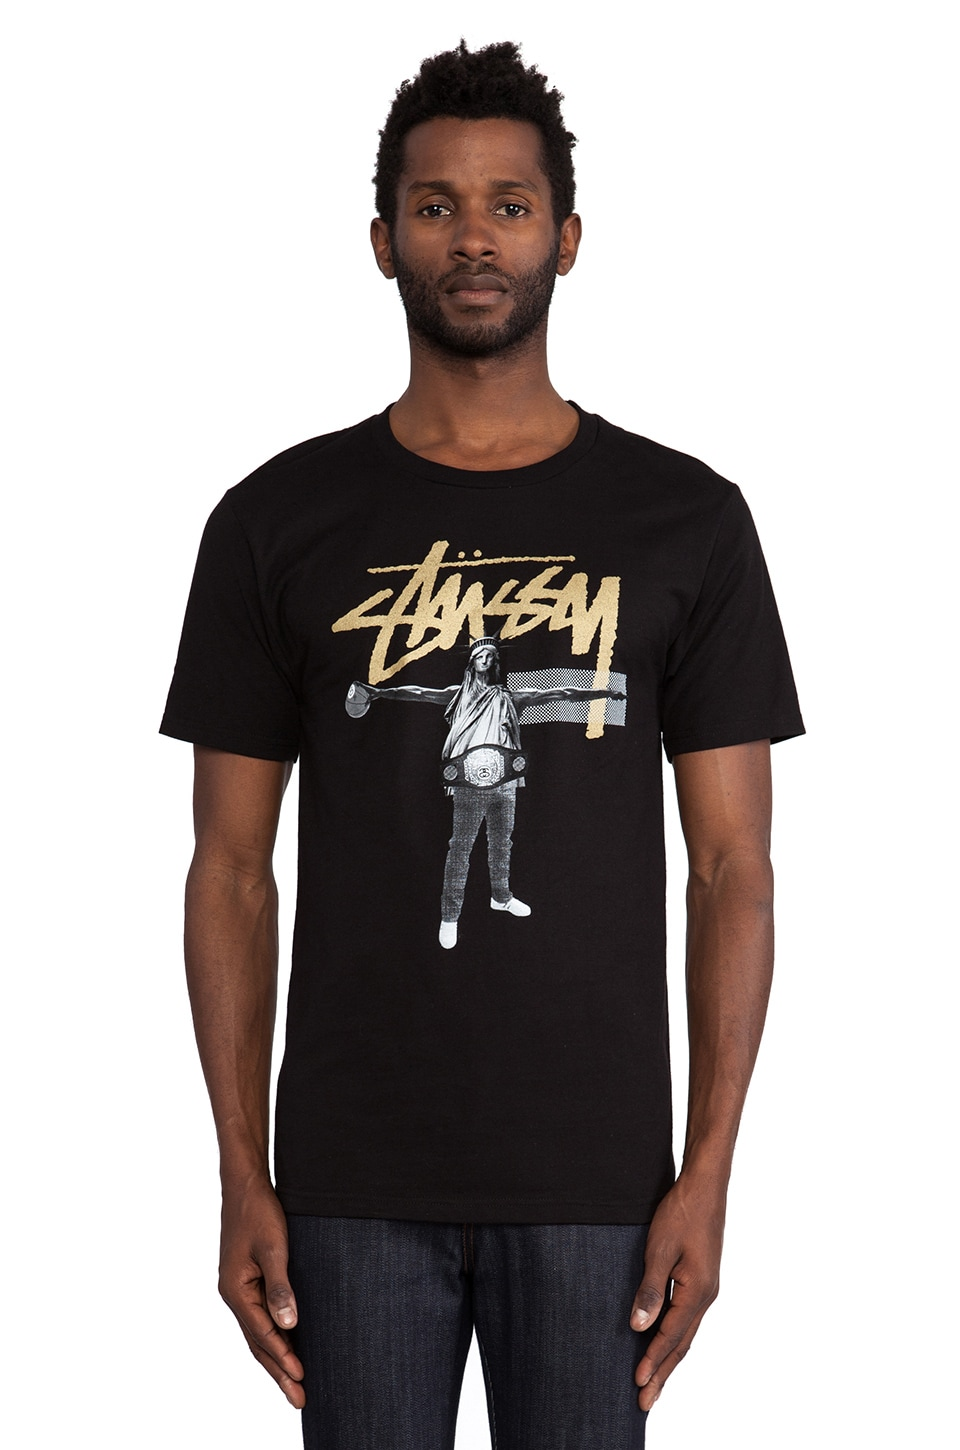 Stussy Liberty B Ball Tee in Black & Metallic Gold